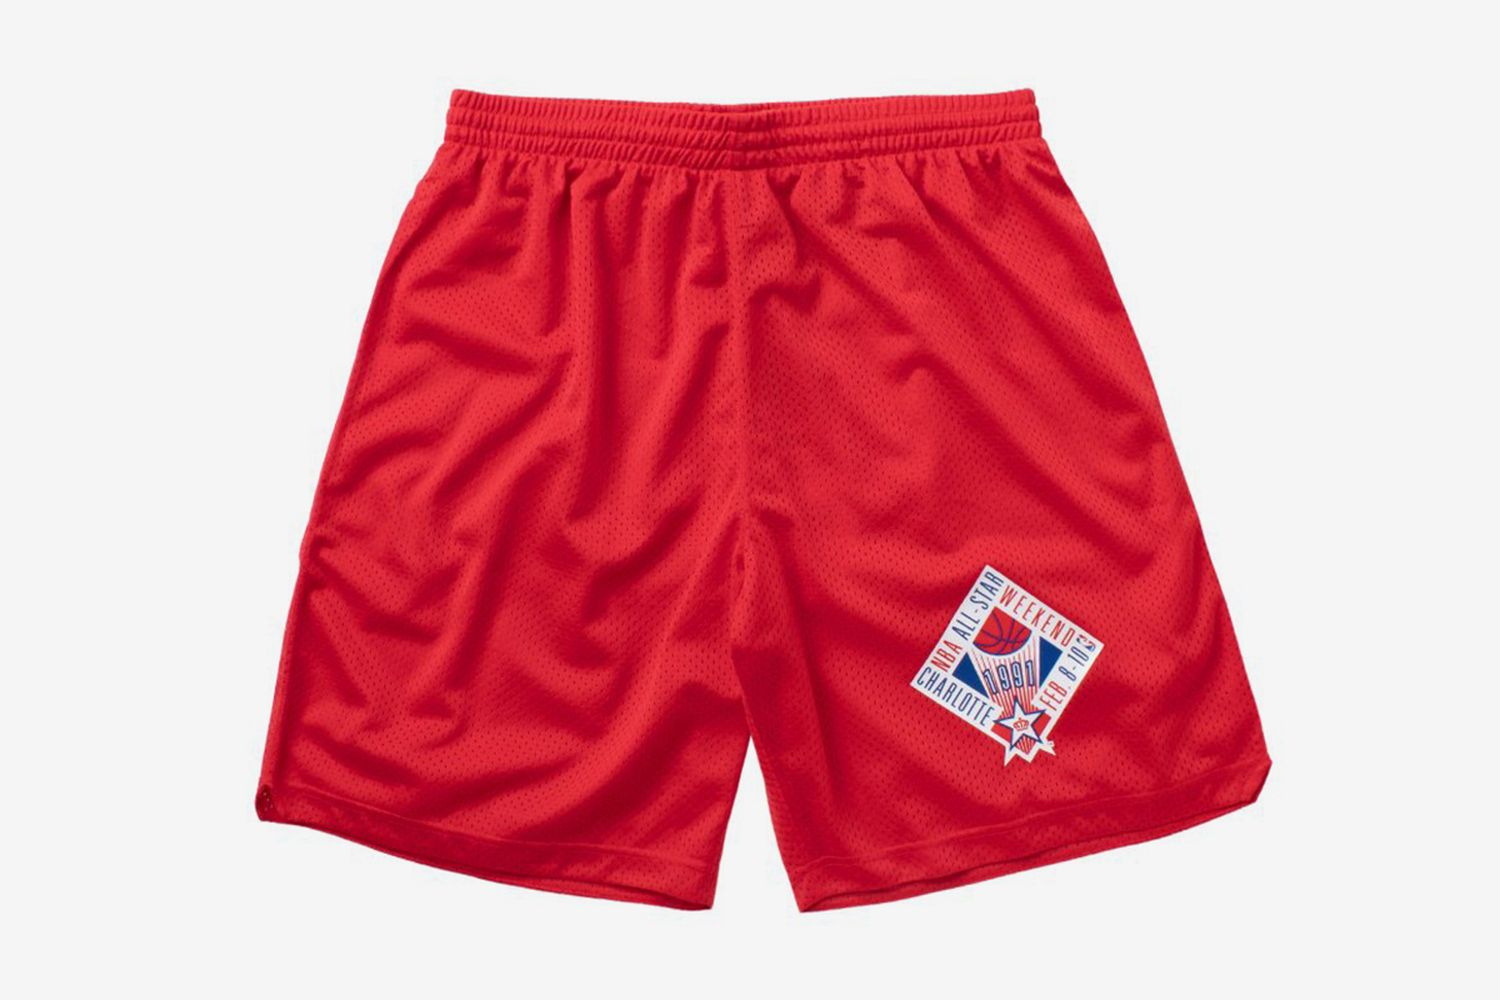 All Star 1991 Practice Shorts